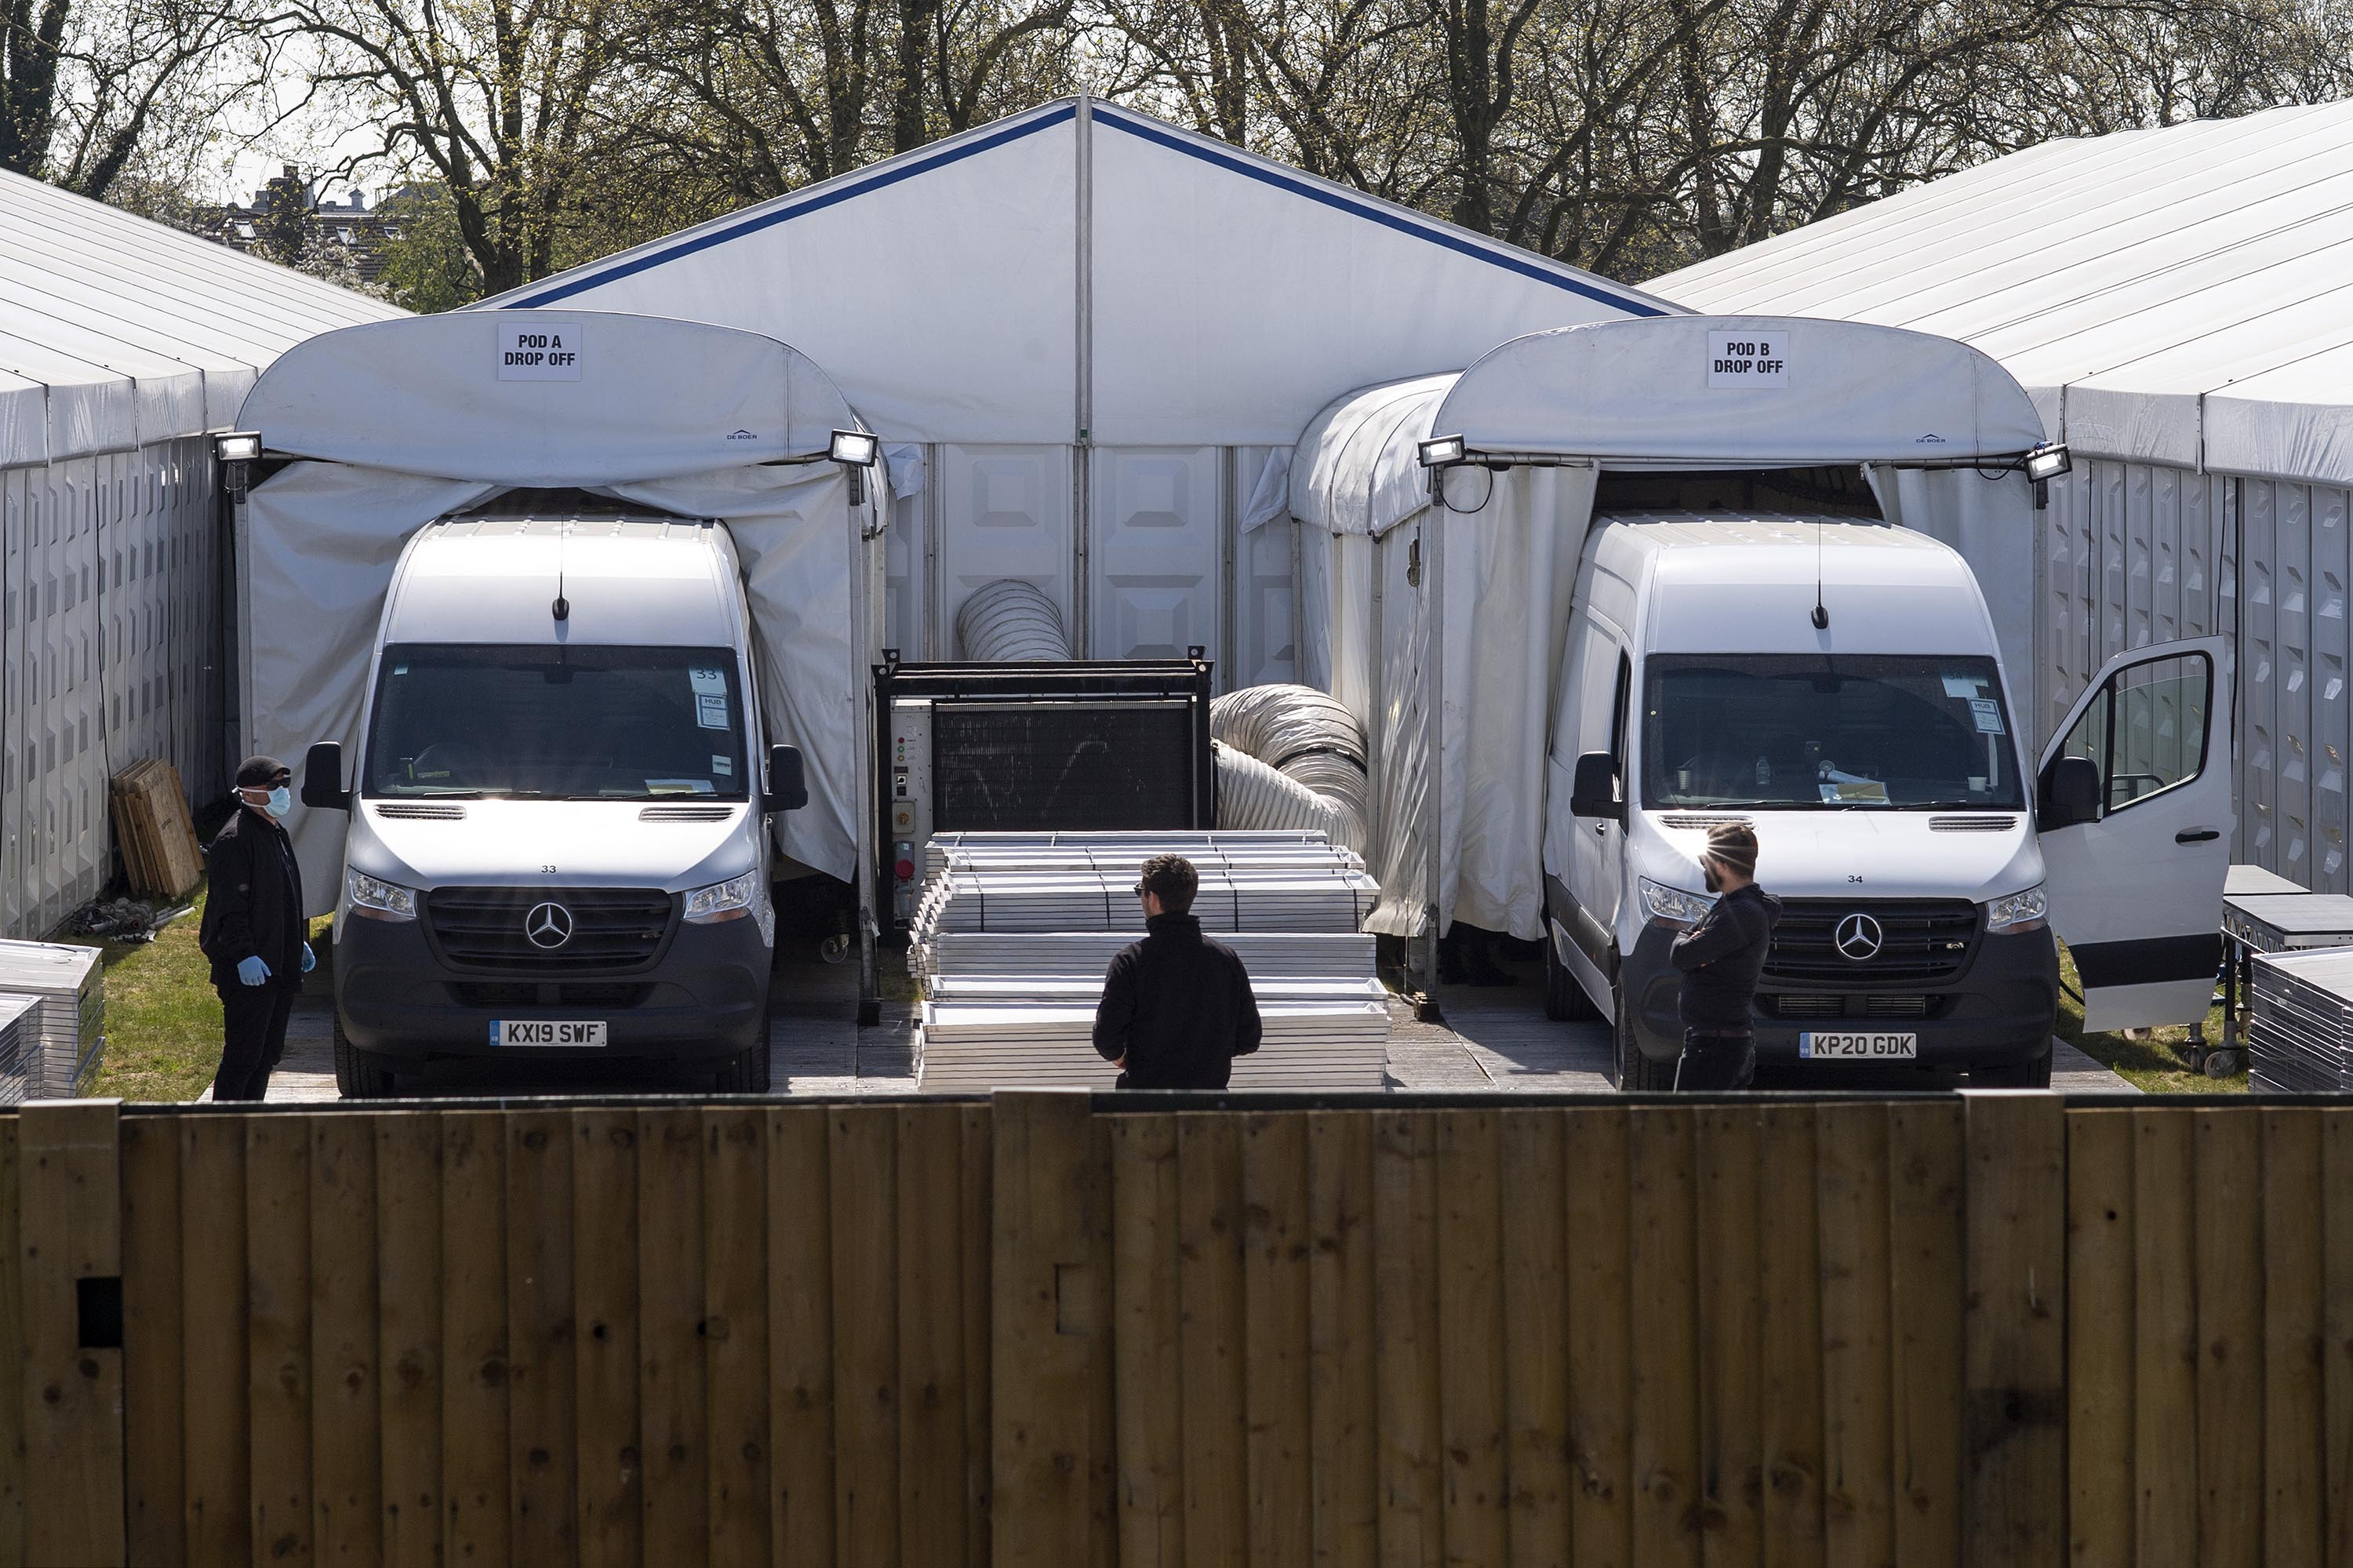 Vans back into drop-off pods at a temporary morgue on Wanstead Flats in London, England, on April 15.